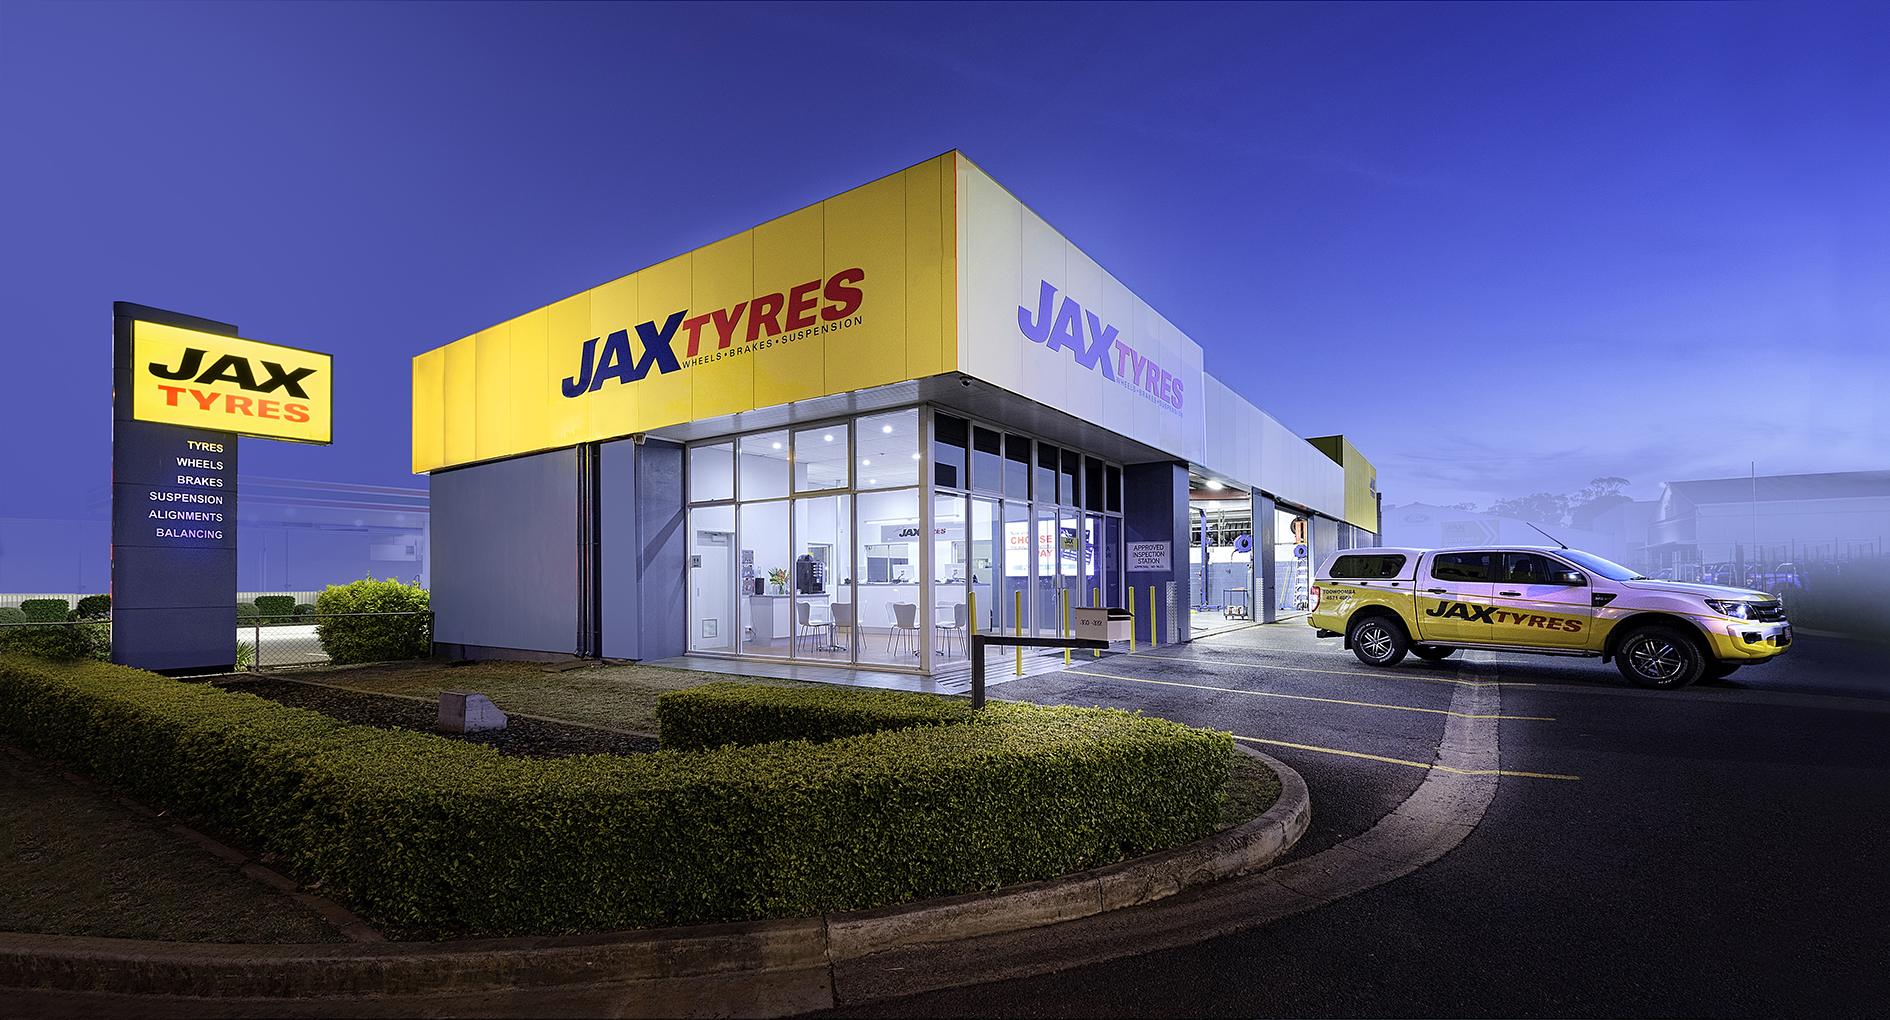 Jax Tyres Franchise Opportunity - Tyre & Auto Service